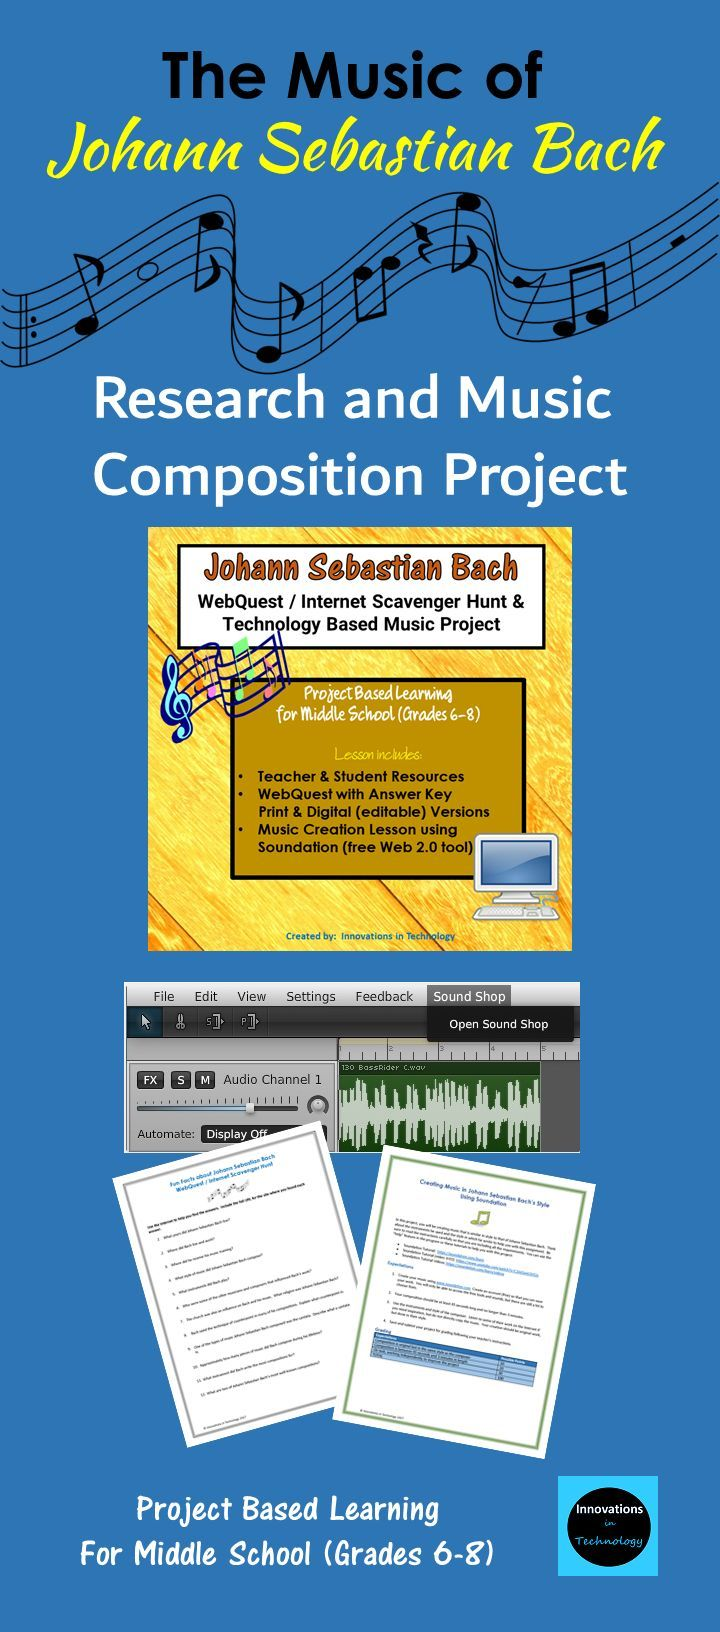 Learn fun facts about Johann Sebastian Bach and his music as they complete a WebQuest (Internet Scavenger Hunt) to answer questions about the topic. Then, they use that knowledge to create a music composition of their own, using Bach's style, using Soundation, a free Web 2.0 music creation and editing program.  Resources, lesson, rubric and answer key included.